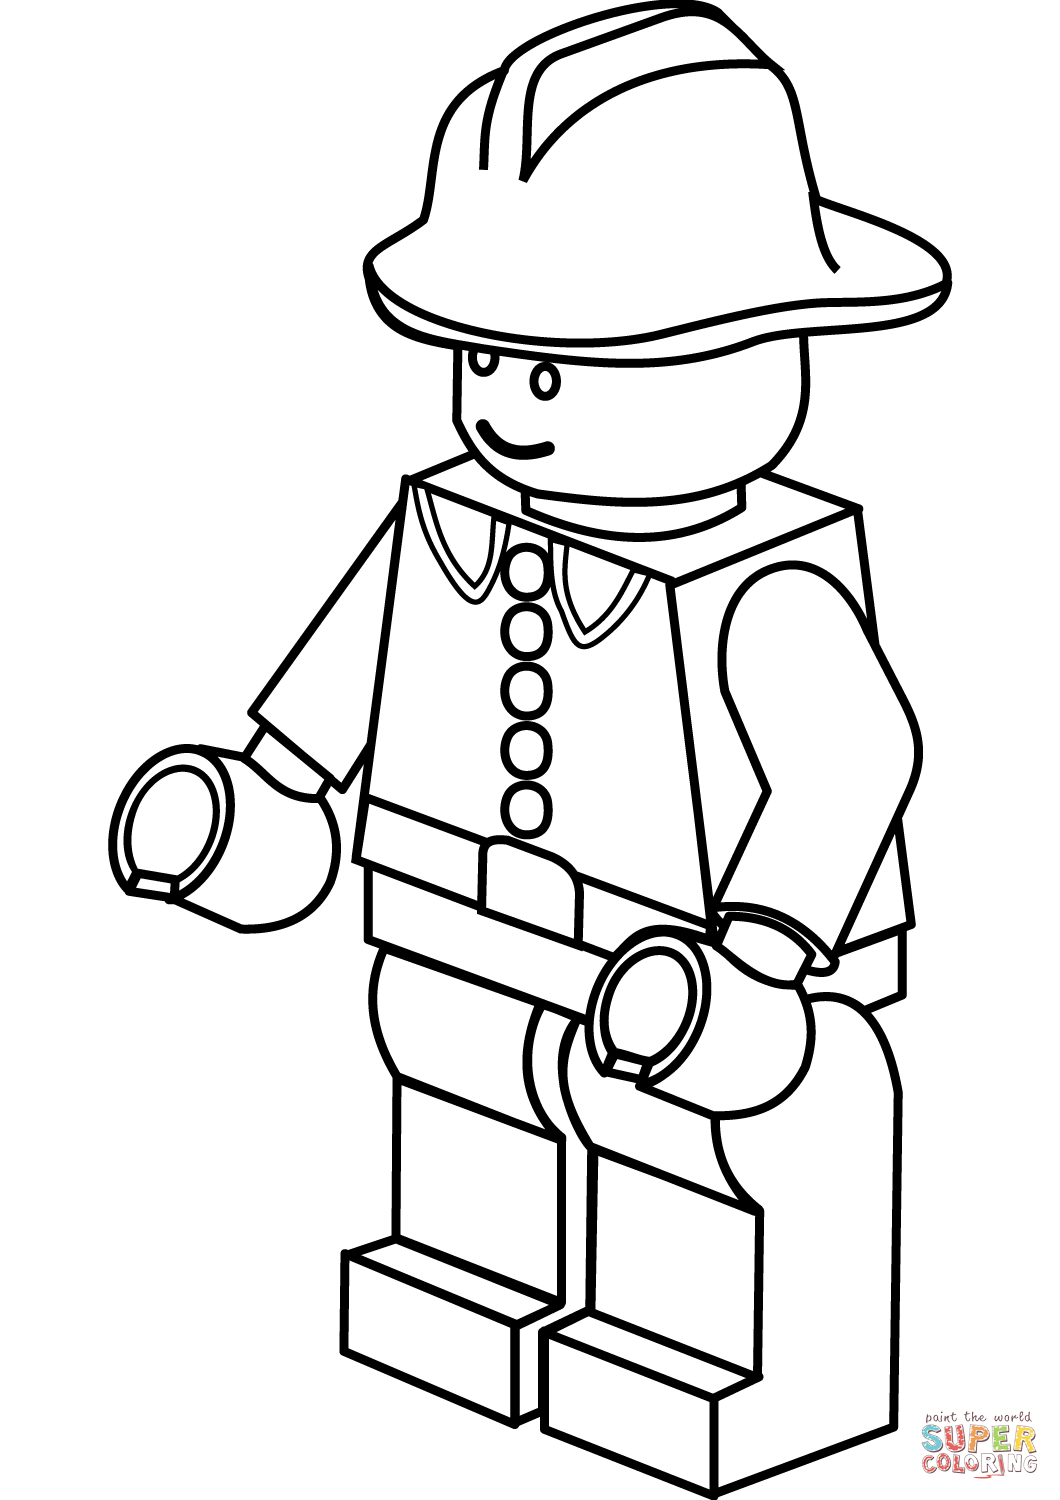 Lego clipart firefighter Lego the Printable Firefighter Pages